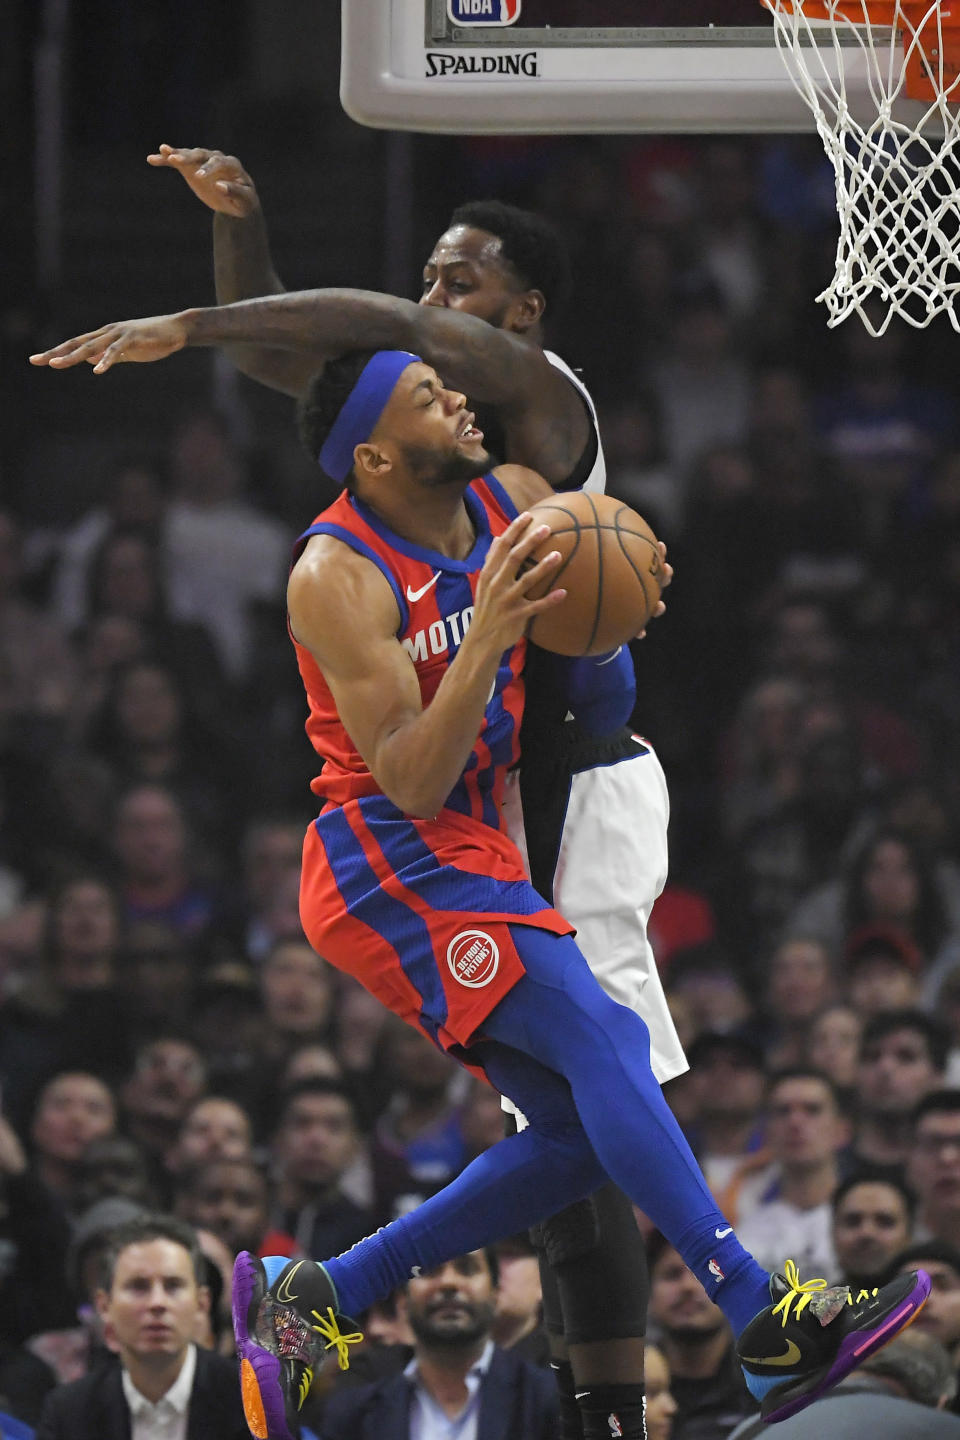 Detroit Pistons guard Bruce Brown, left, shoots as Los Angeles Clippers forward JaMychal Green defends during the first half of an NBA basketball game Thursday, Jan. 2, 2020, in Los Angeles. (AP Photo/Mark J. Terrill)